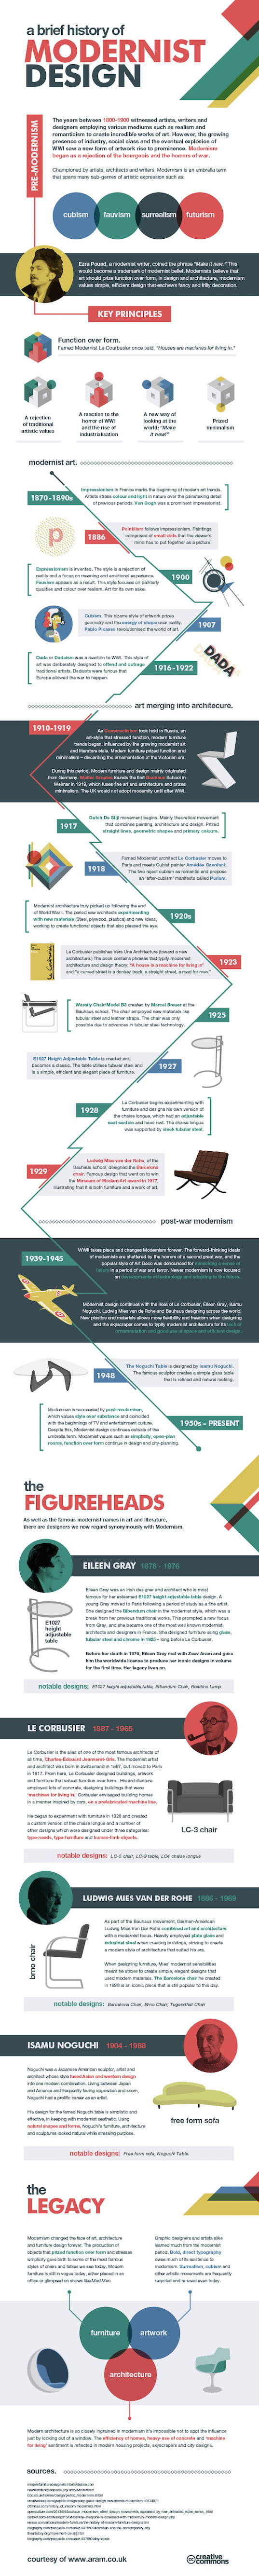 infographic, ARAM, reader submitted content, modernism, Modernist architecture, modernist art, history of modernism, modernist design